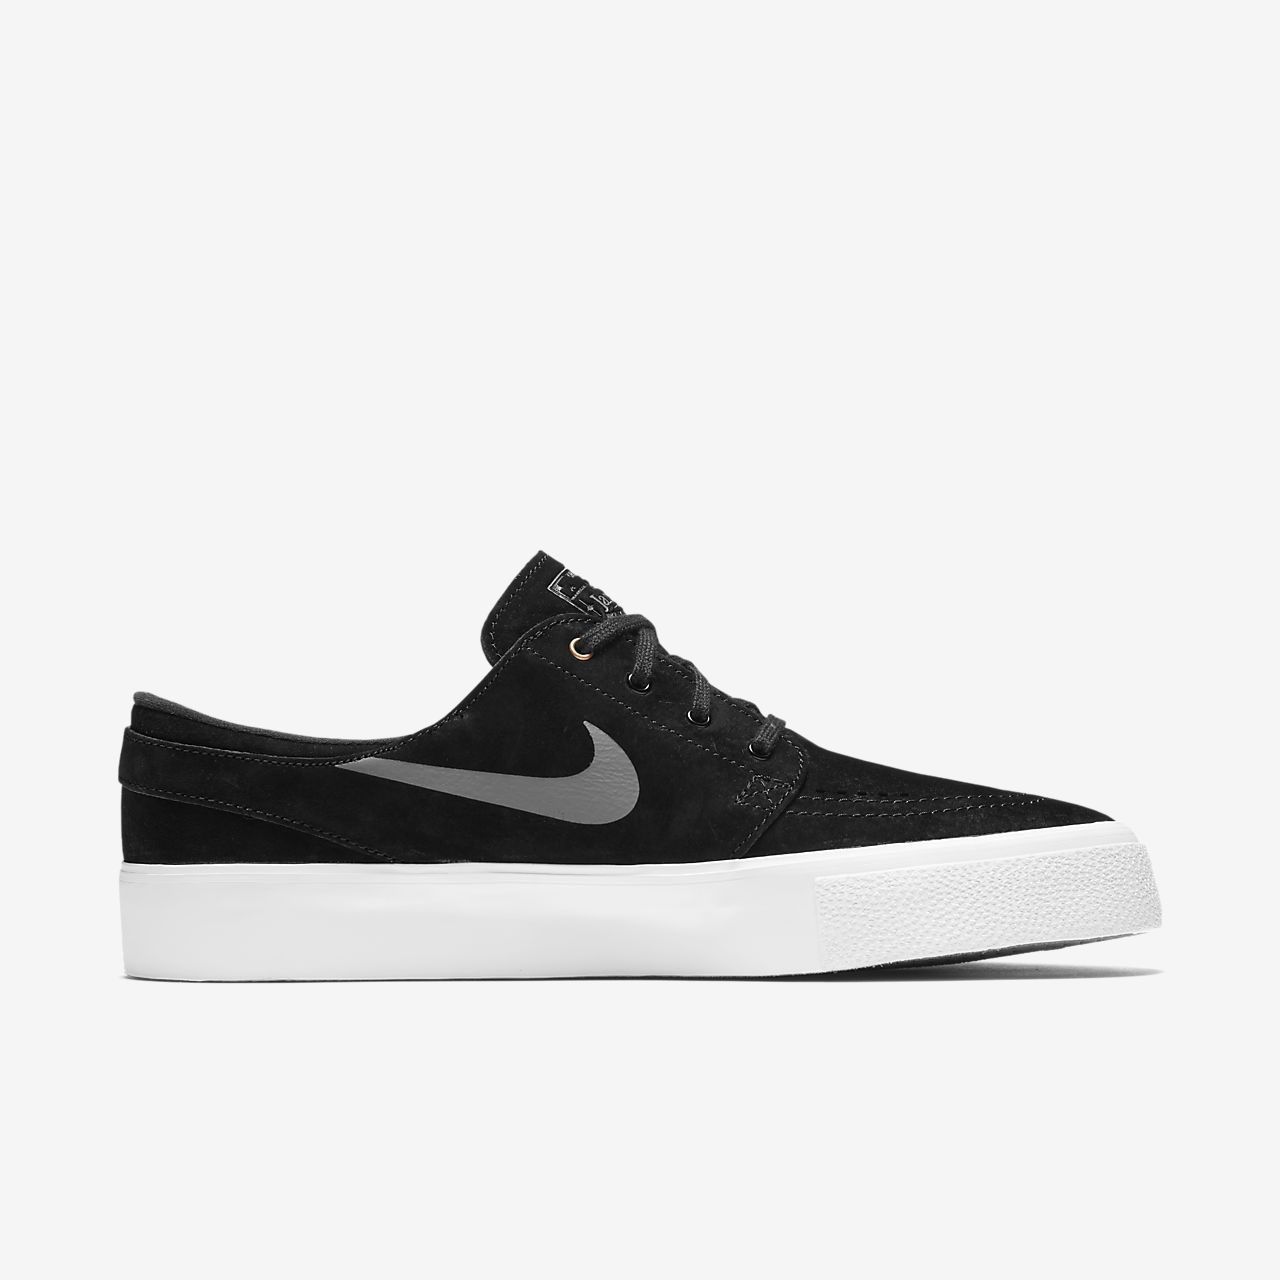 Womens Nike Sb Zoom Stefan Janoski Black/White/Light Brown Skateboarding Shoe